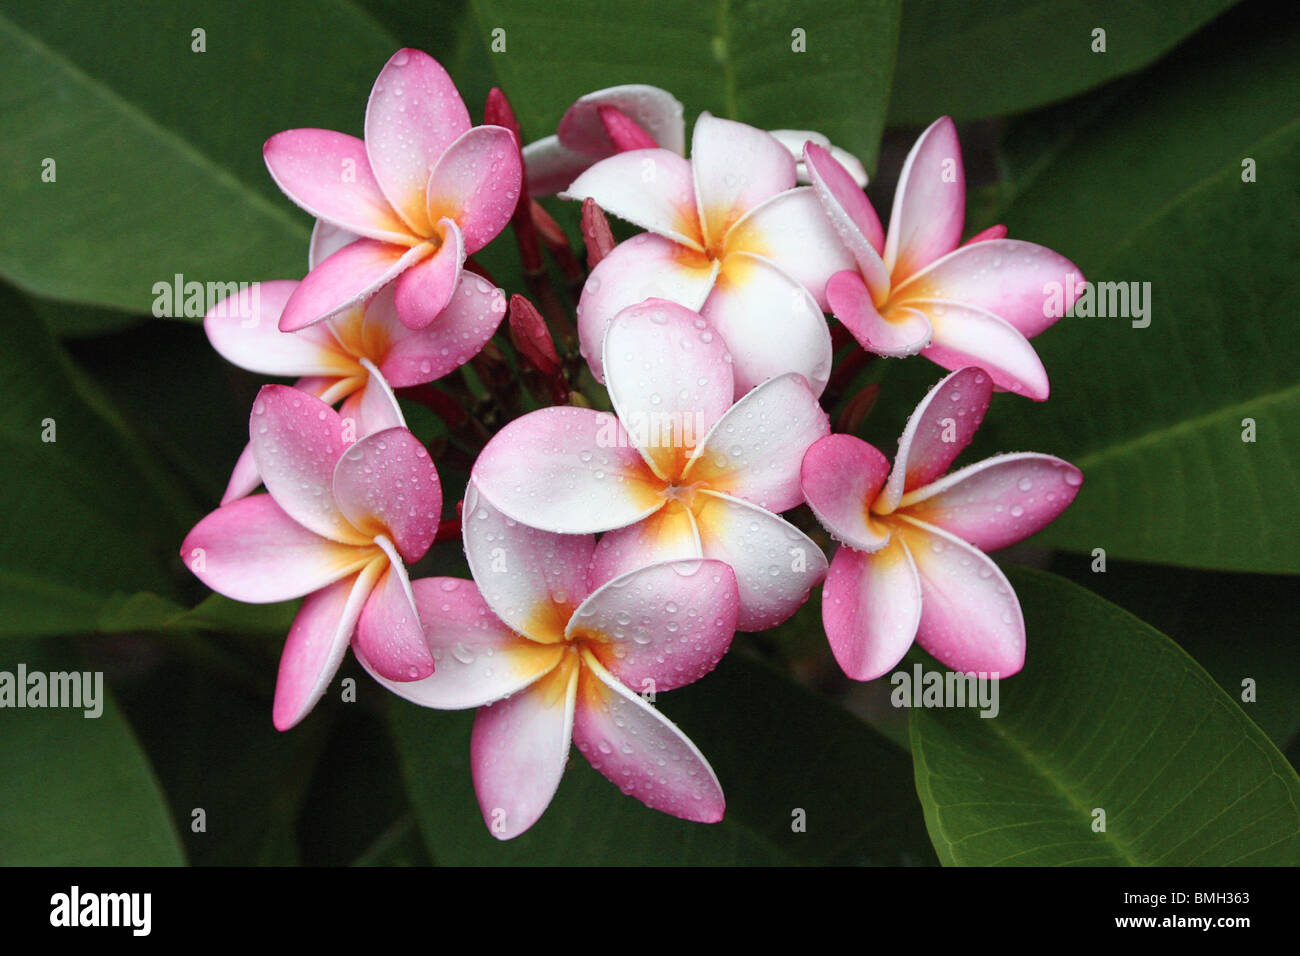 Bunch of pink yellow and white plumeria flowers and buds with dew bunch of pink yellow and white plumeria flowers and buds with dew drops and green leaves mightylinksfo